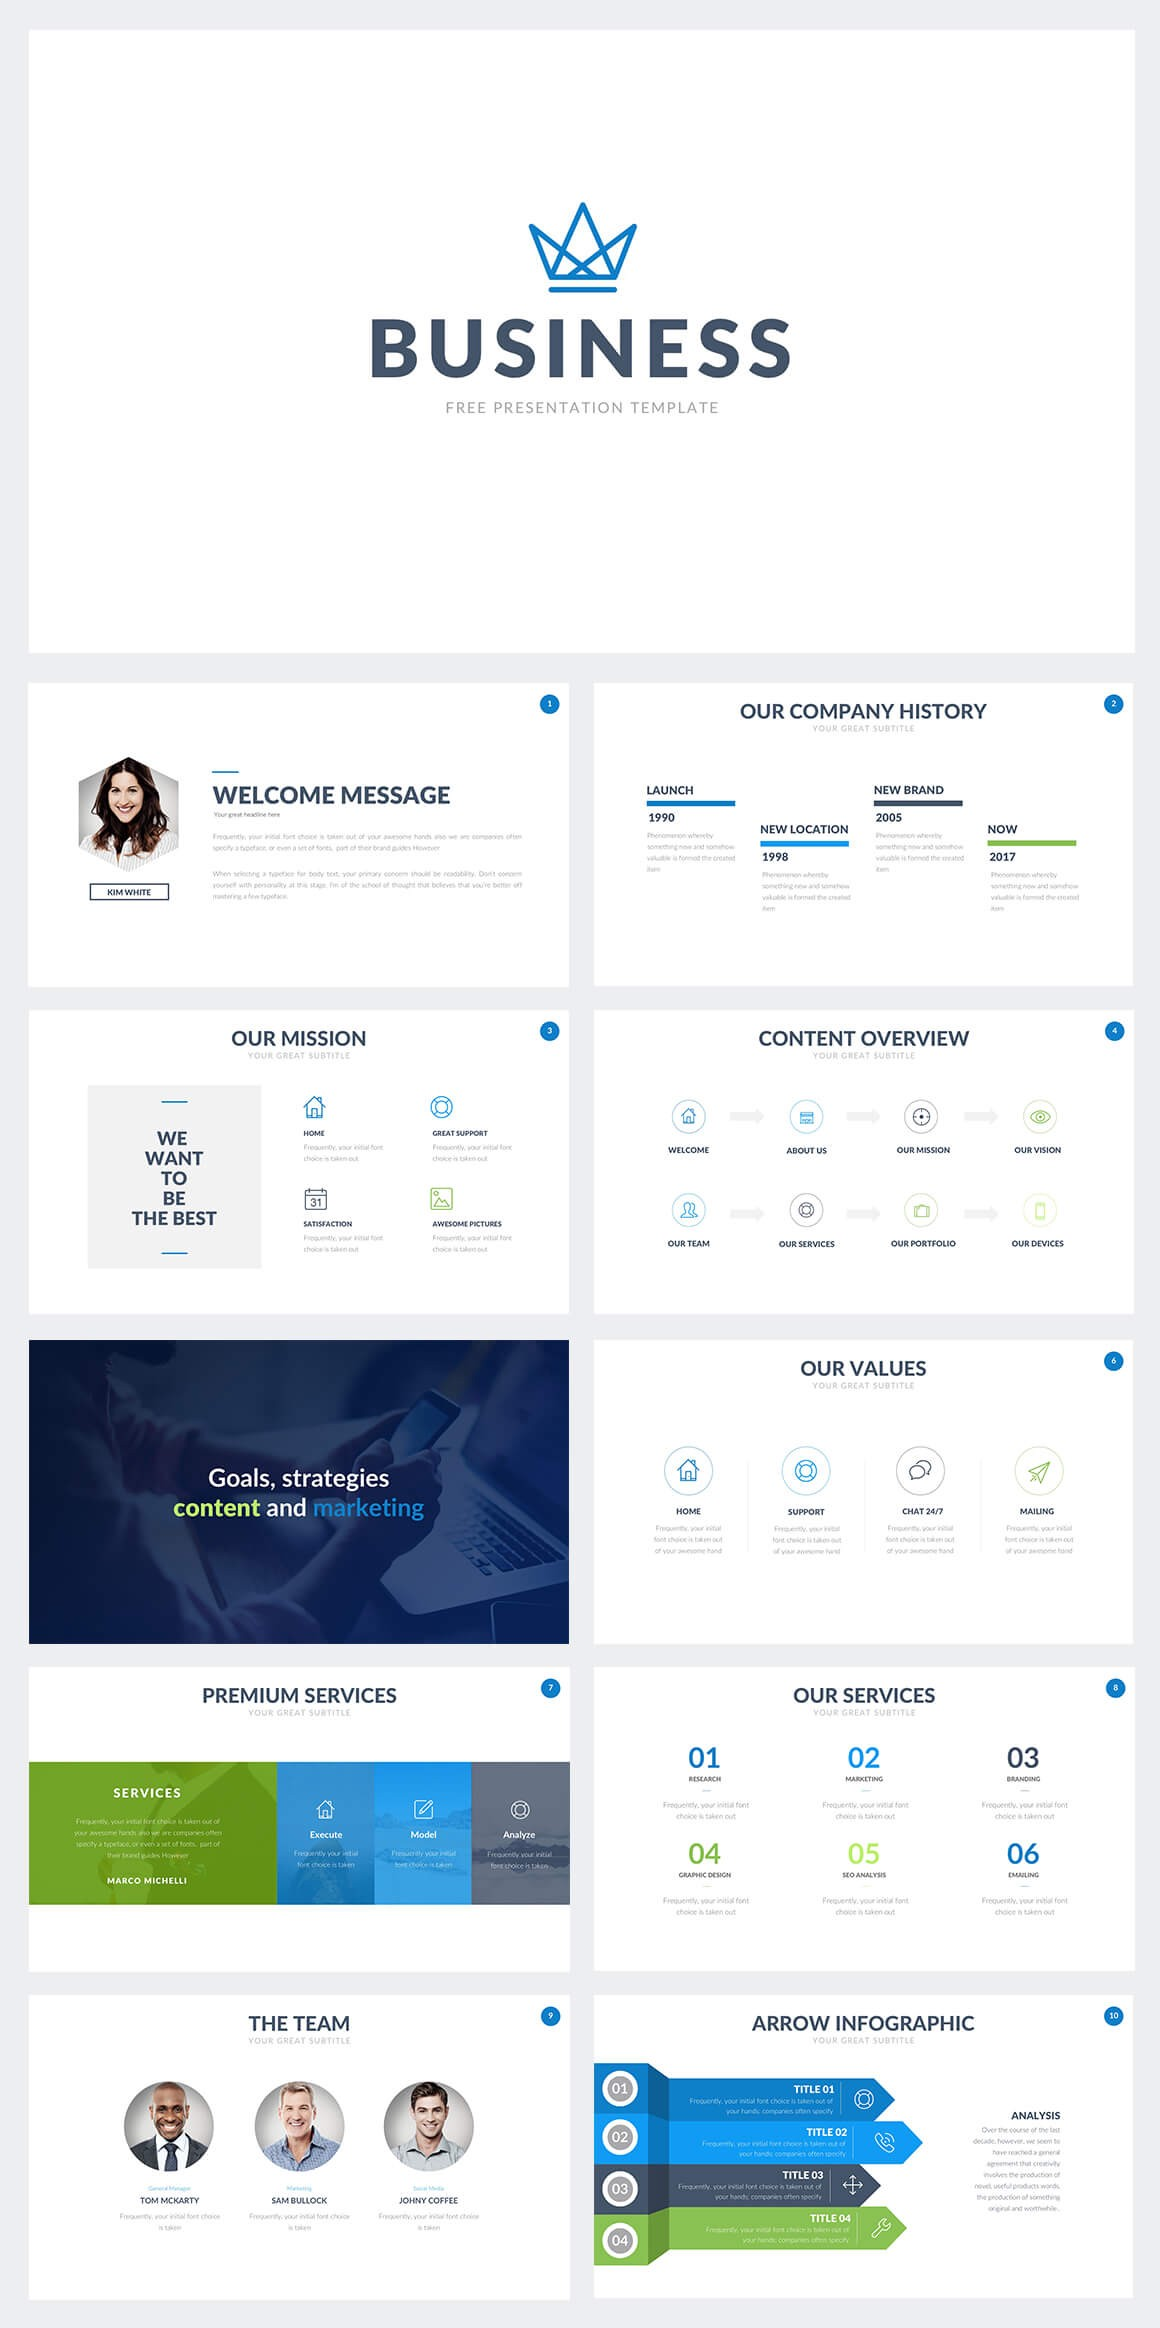 25 free cool powerpoint templates for presentations, Modern powerpoint